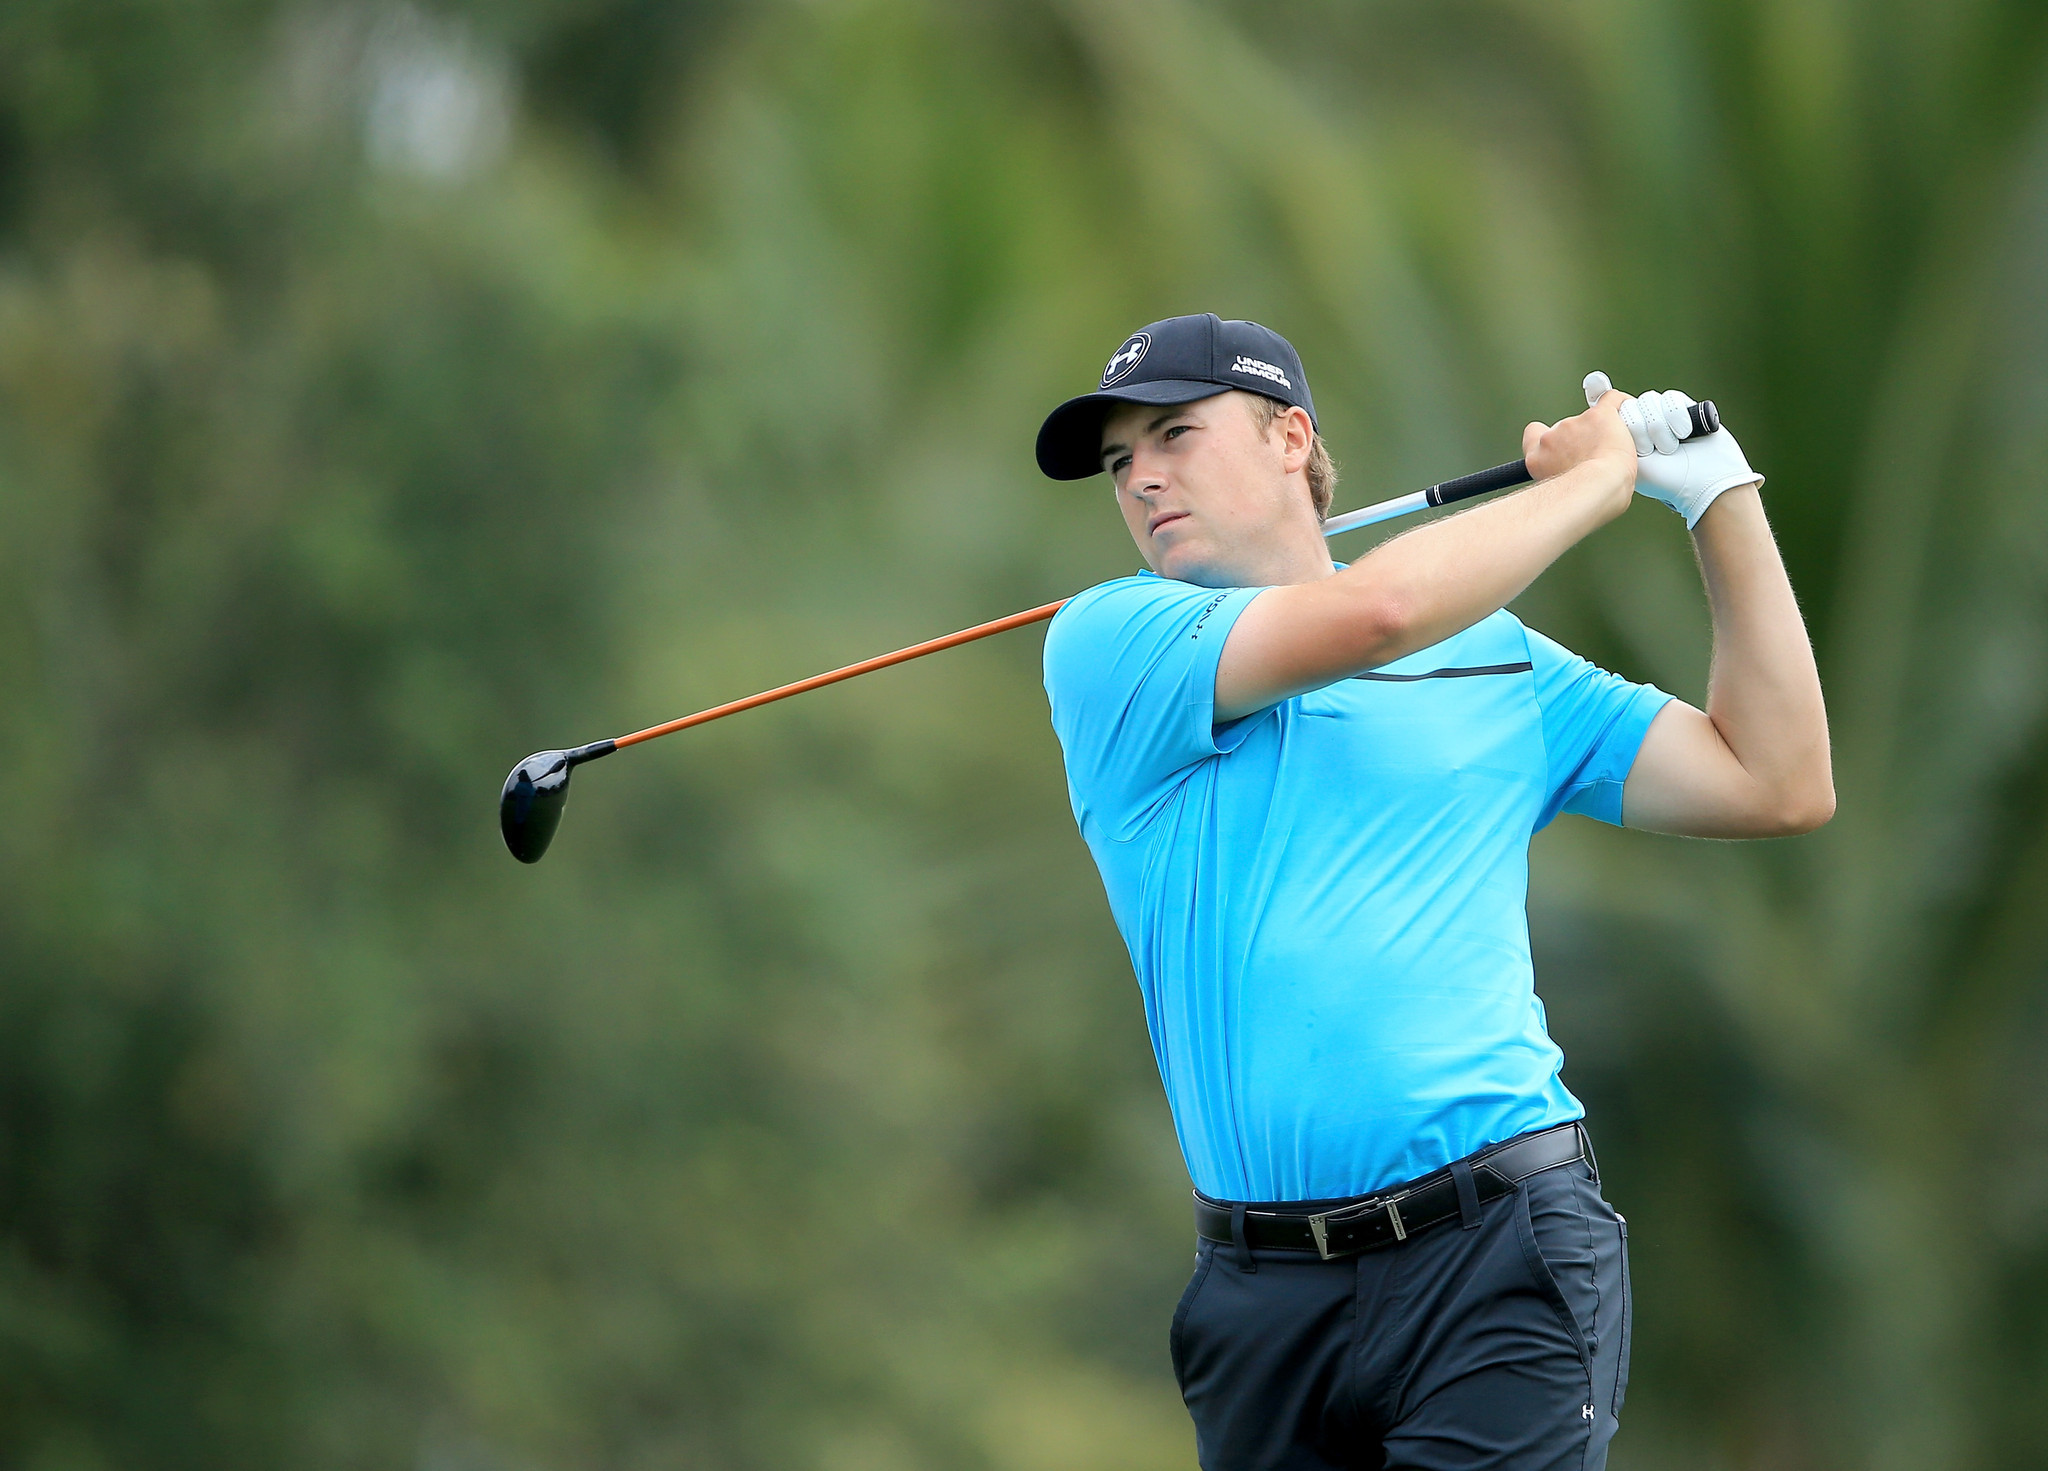 Jordan Spieth leads young group of golfers on PGA Tour - The Morning Call